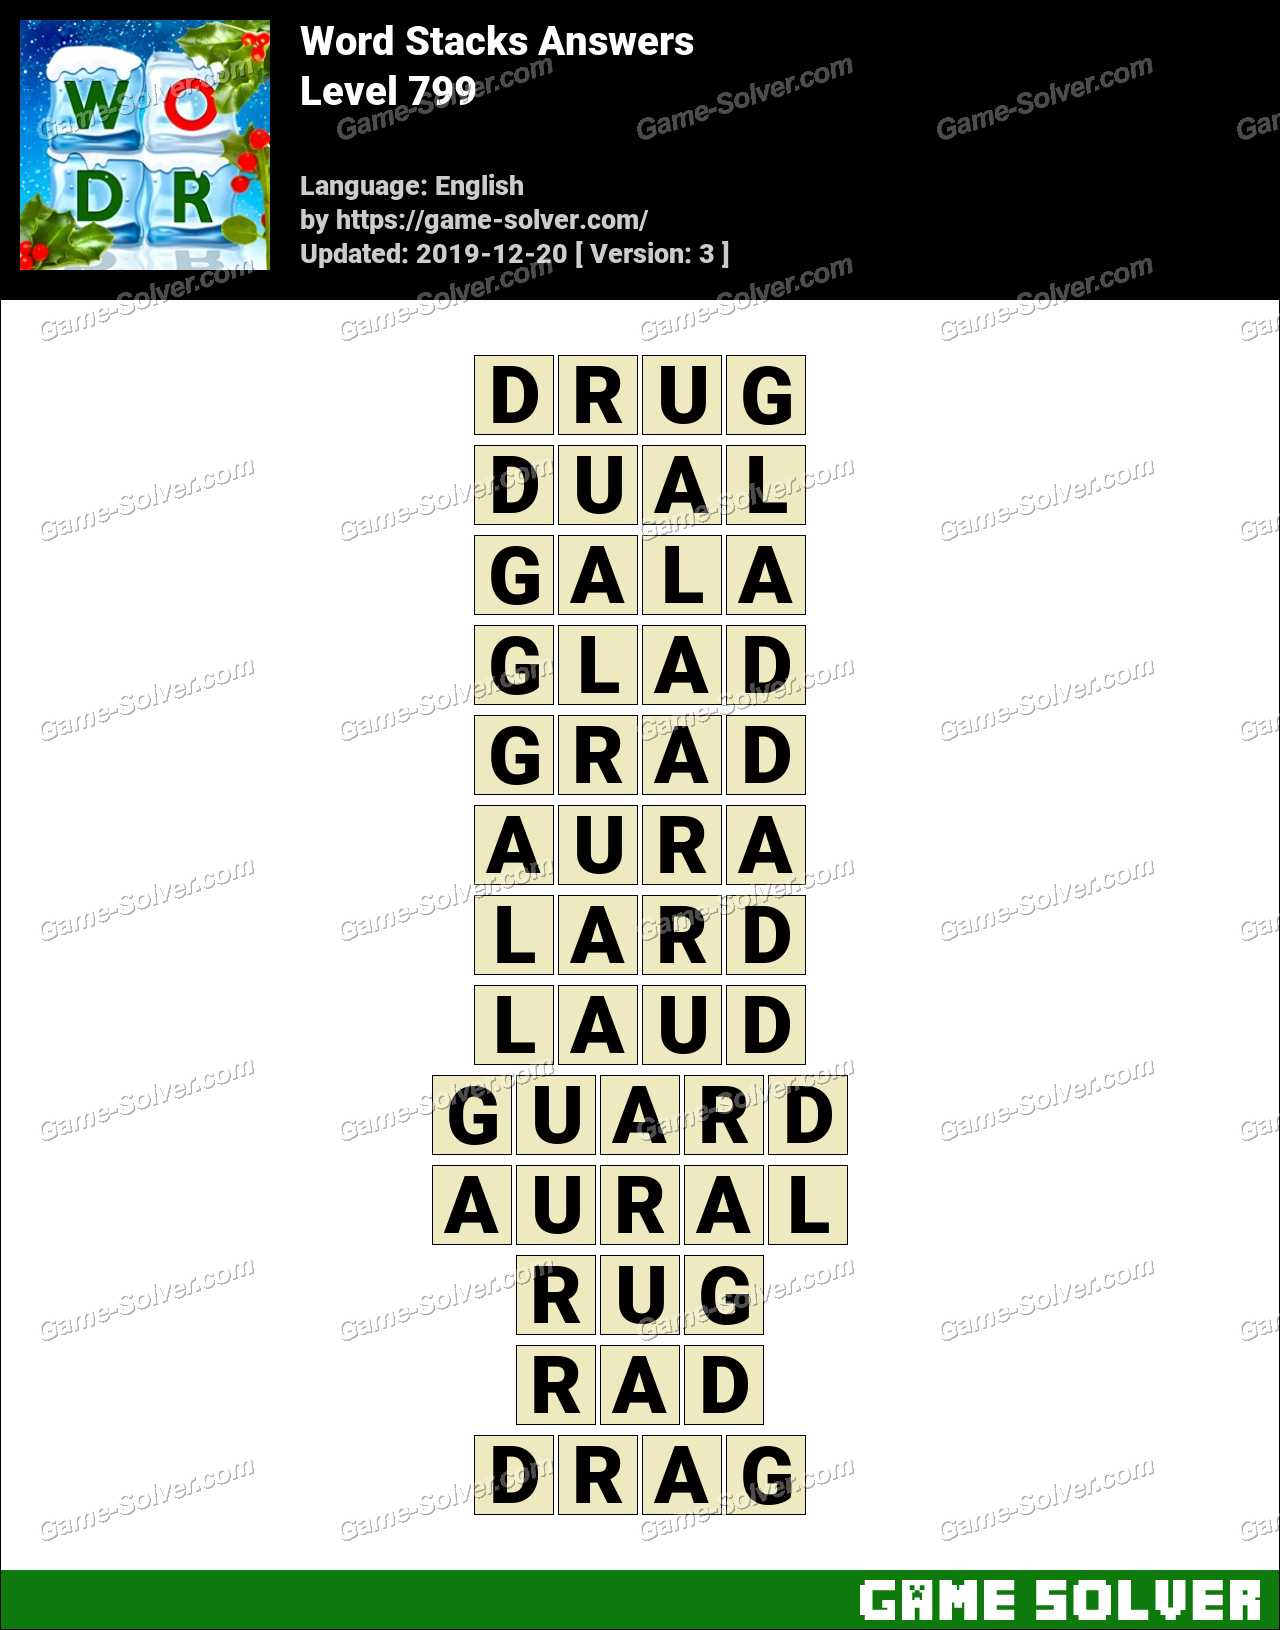 Word Stacks Level 799 Answers